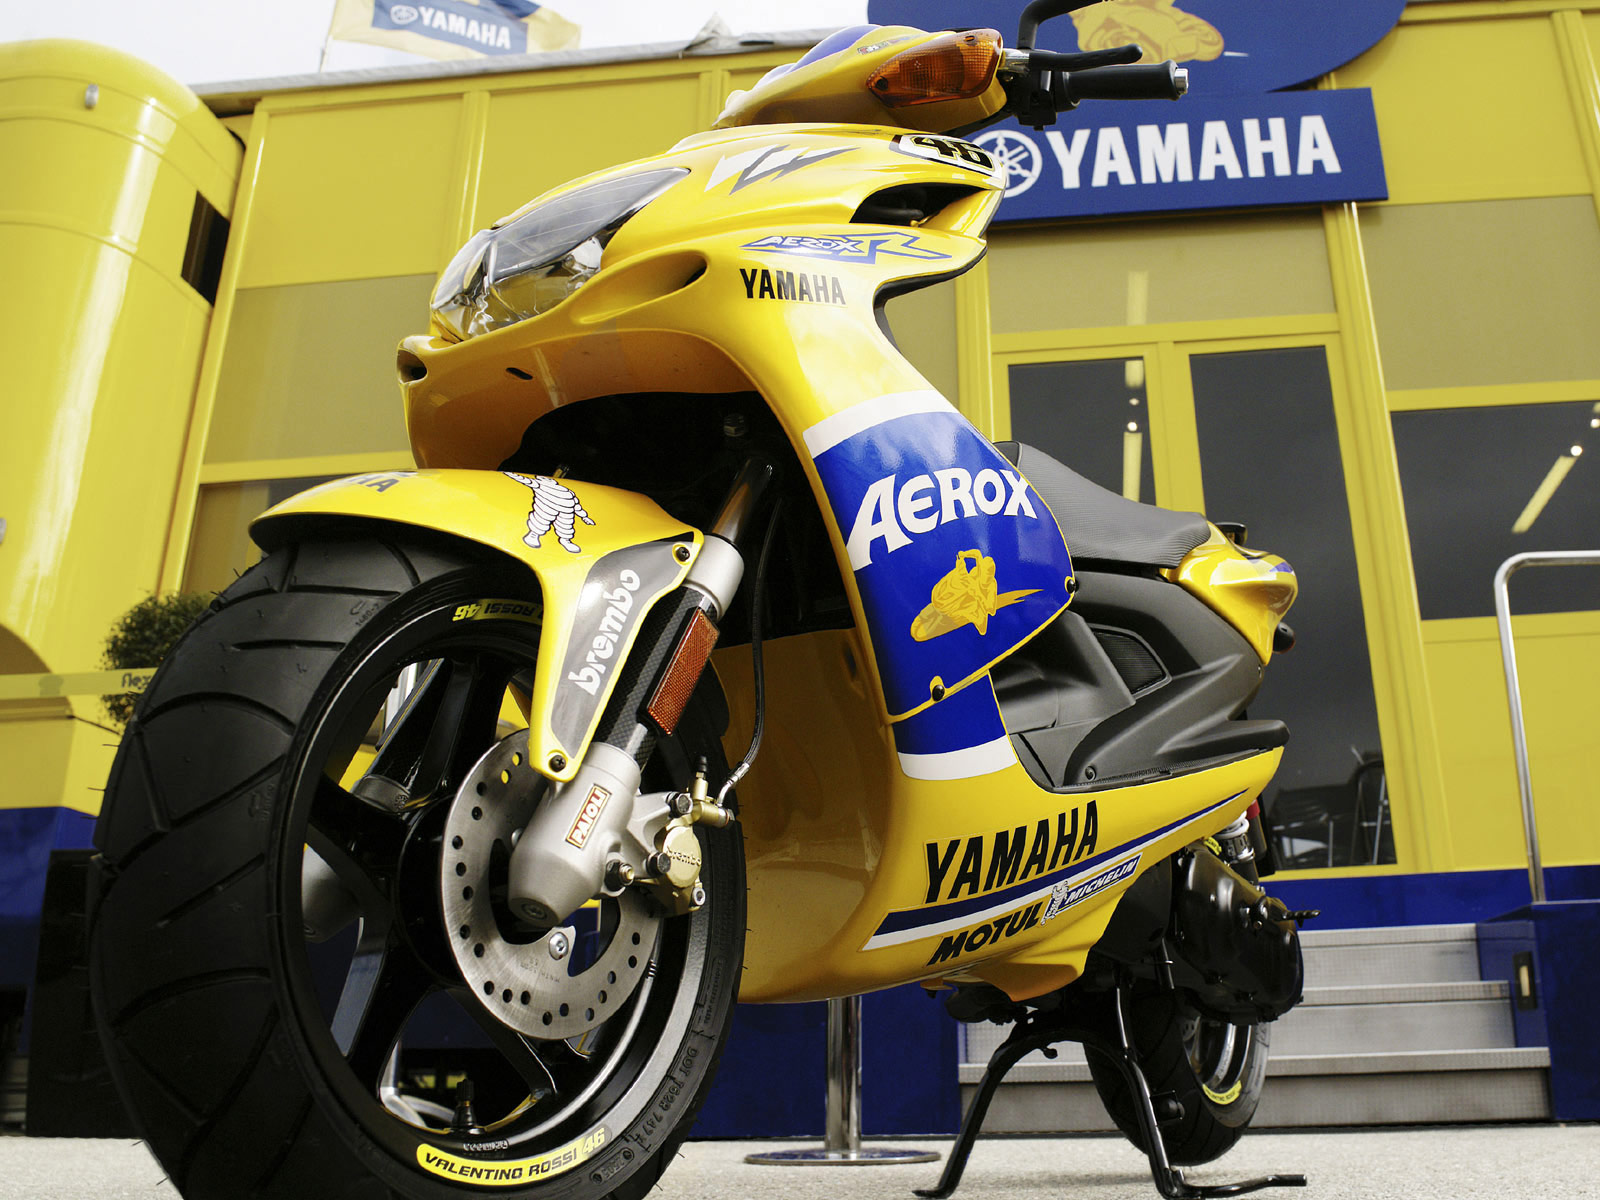 Yamaha aerox photo - 2